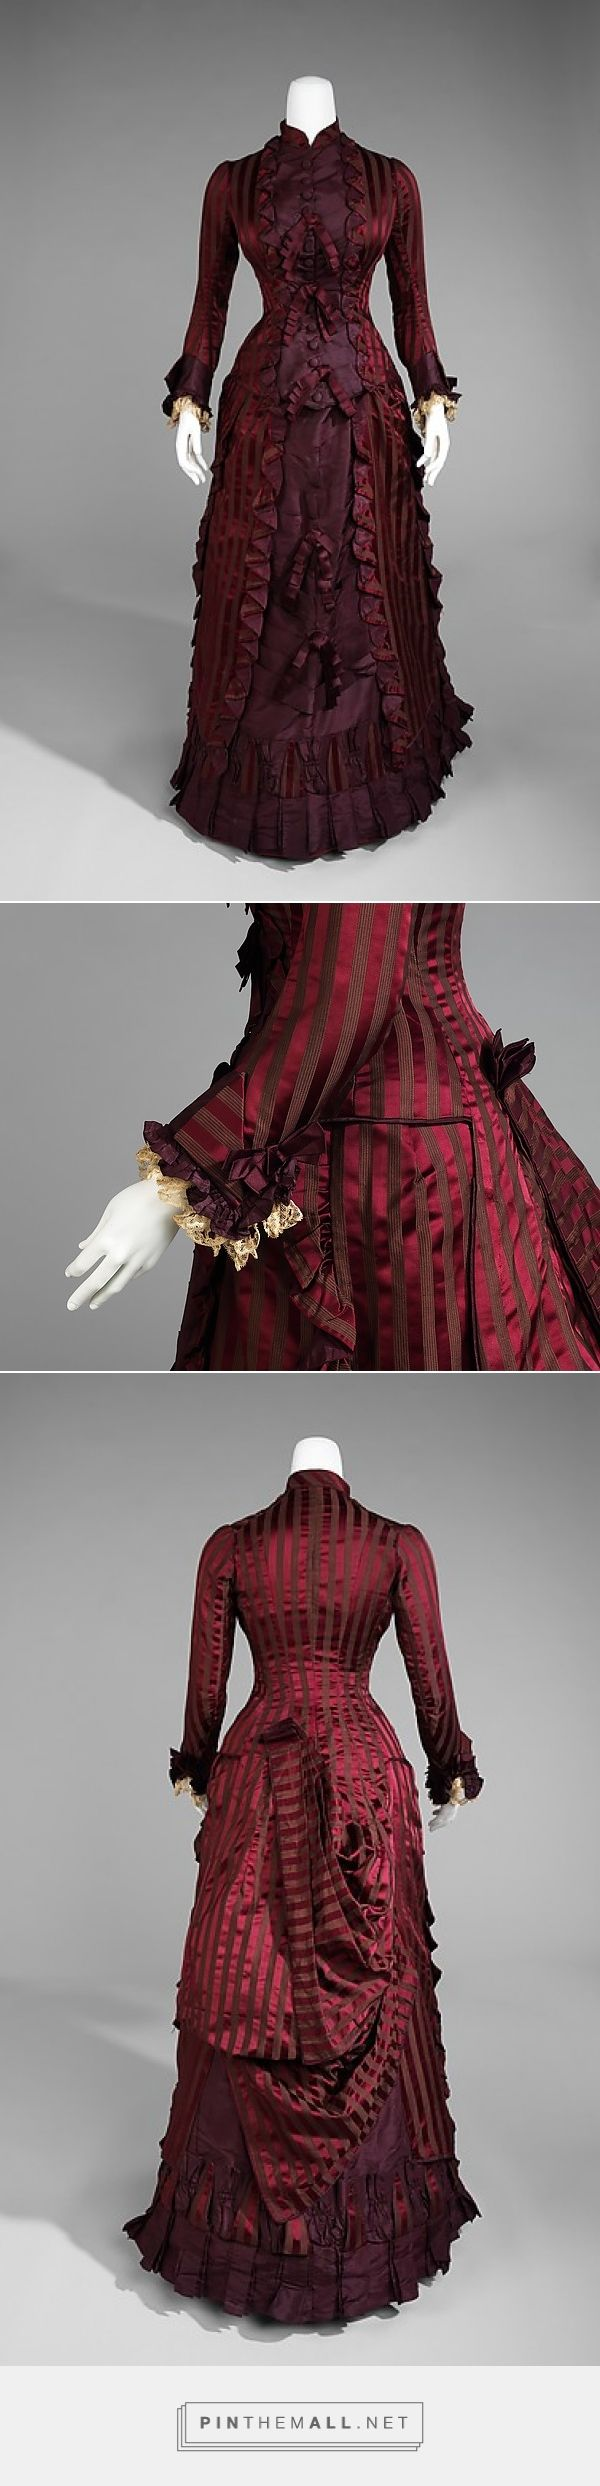 Wedding ensemble 1878 American | The Metropolitan Museum of Art